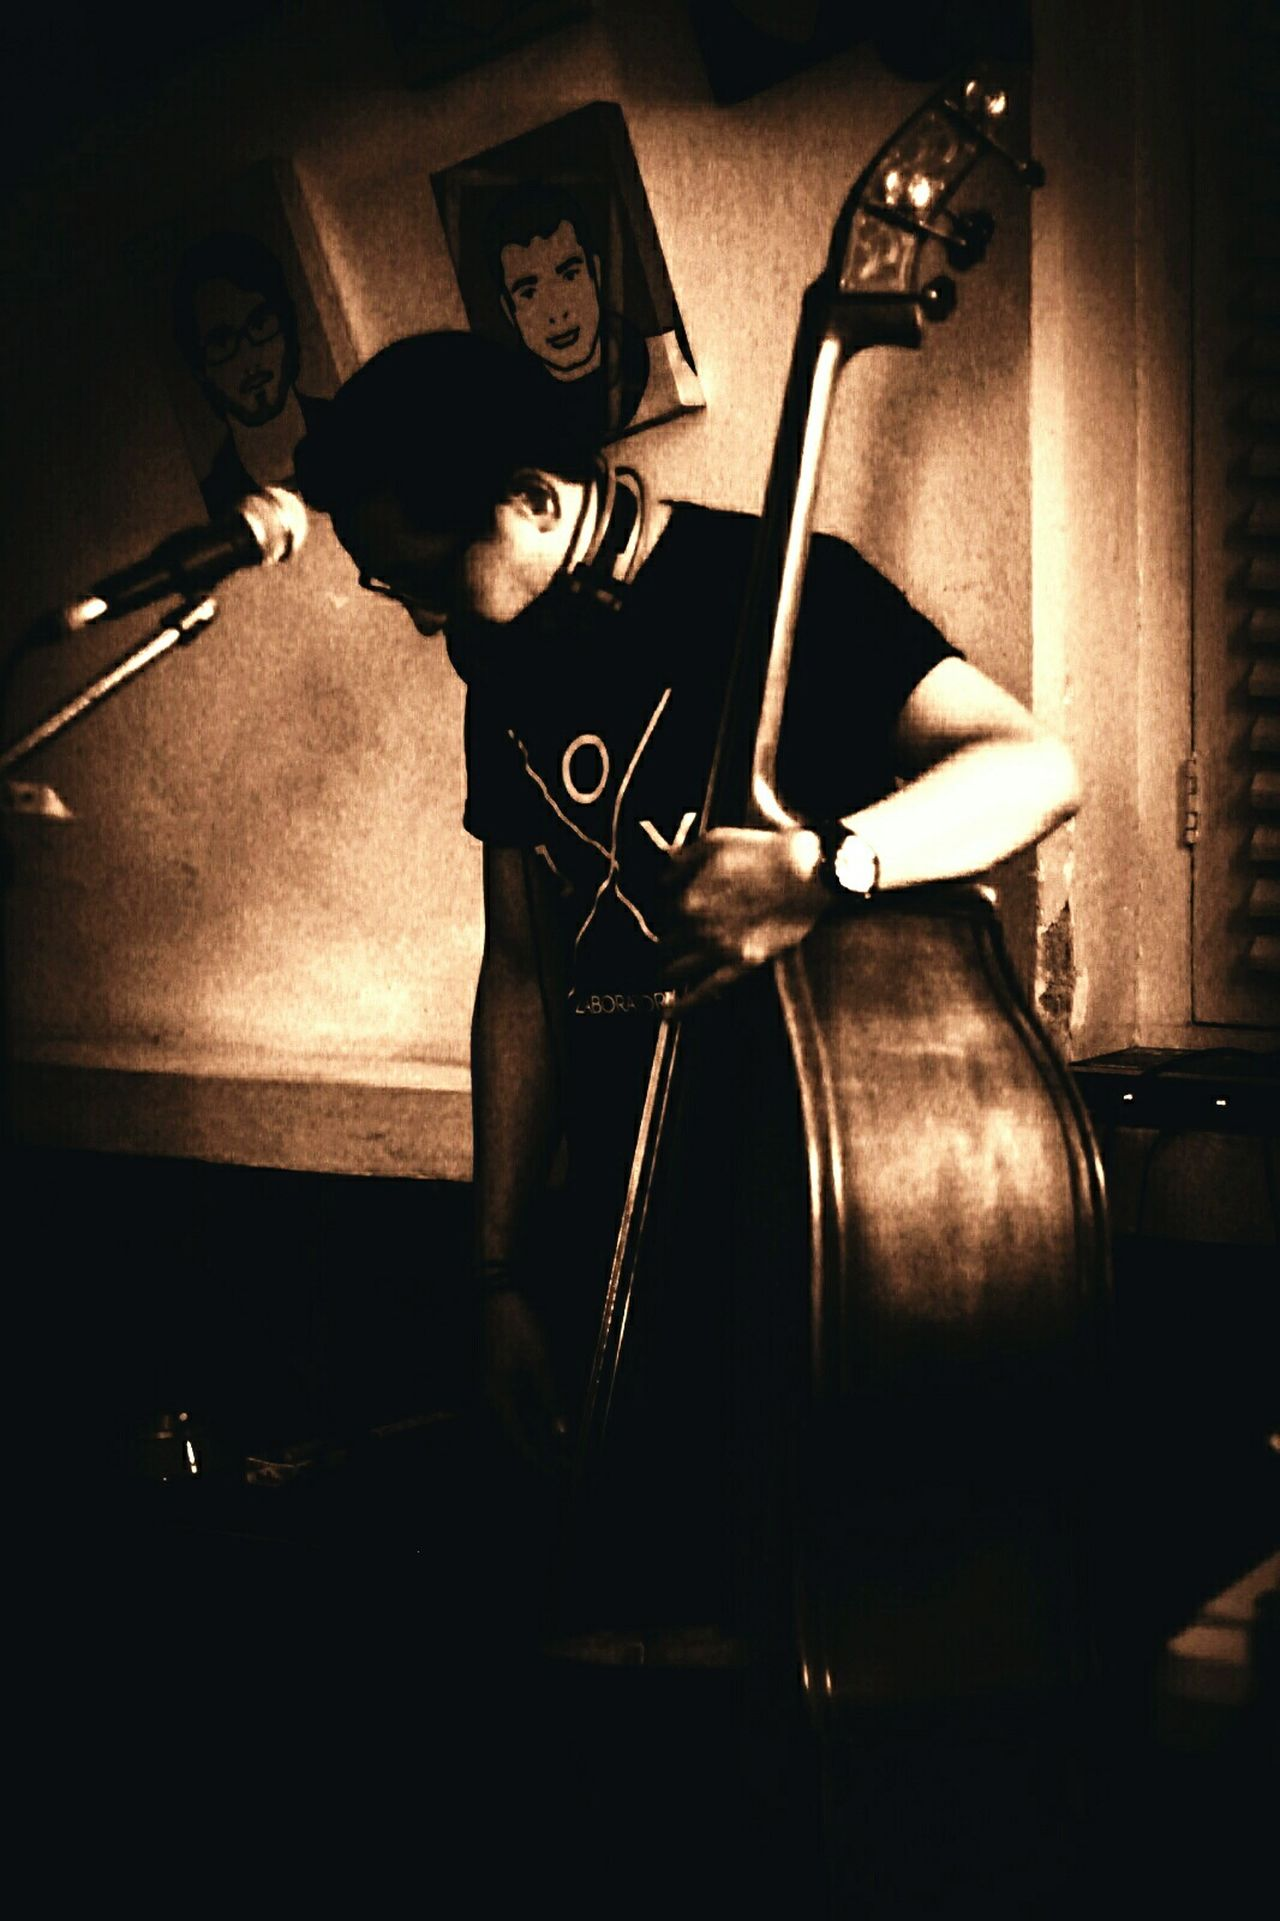 Taking Photos LiveMusic Musicphotography That's Me Endorsement Joylabsclothing Blackstockingmusic Peoplephotography Bass Player Doublebass